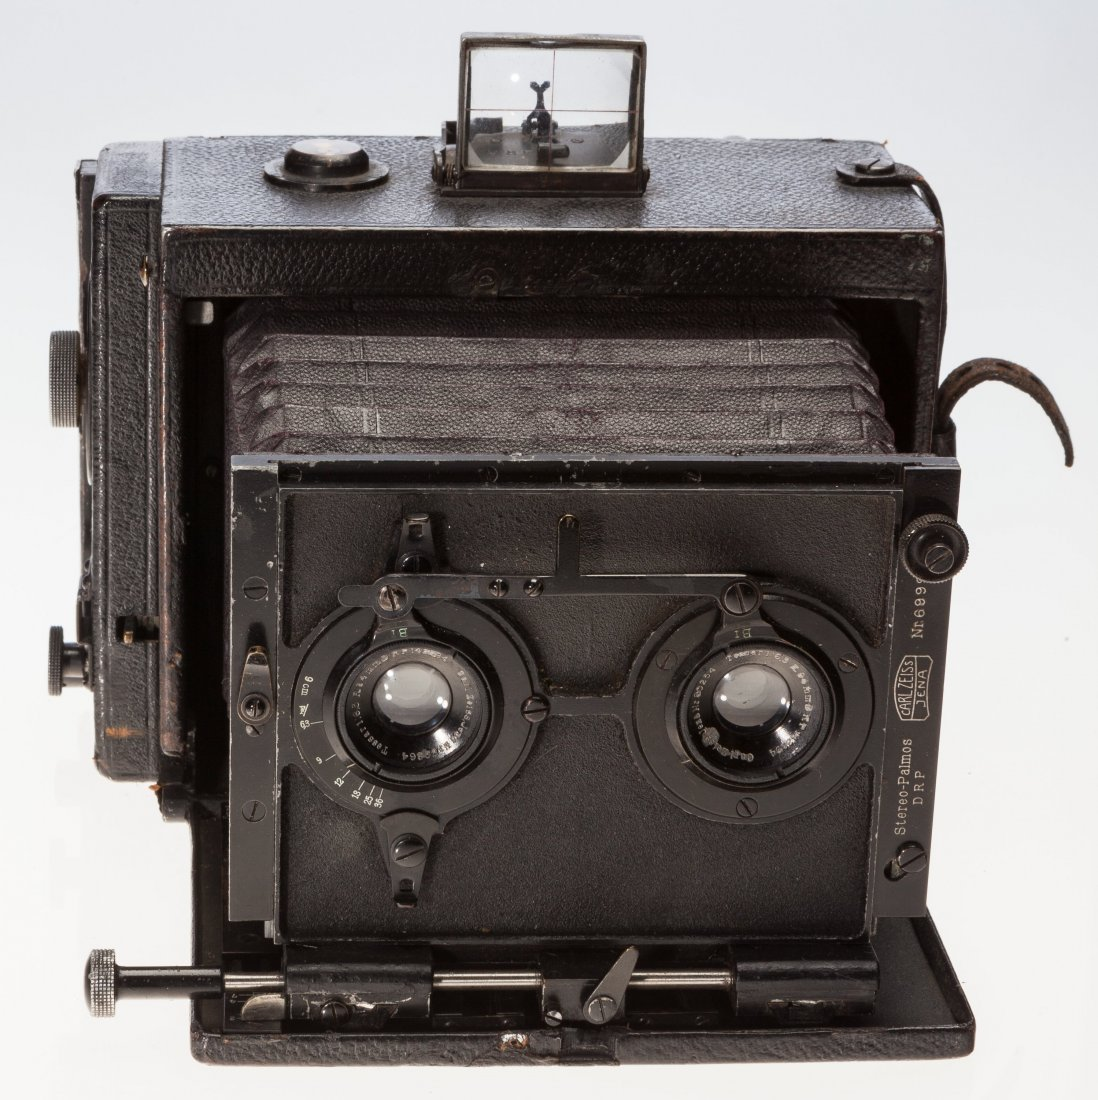 73009: Carl Zeiss Stereo Palmos Folding Plate Camera Ge